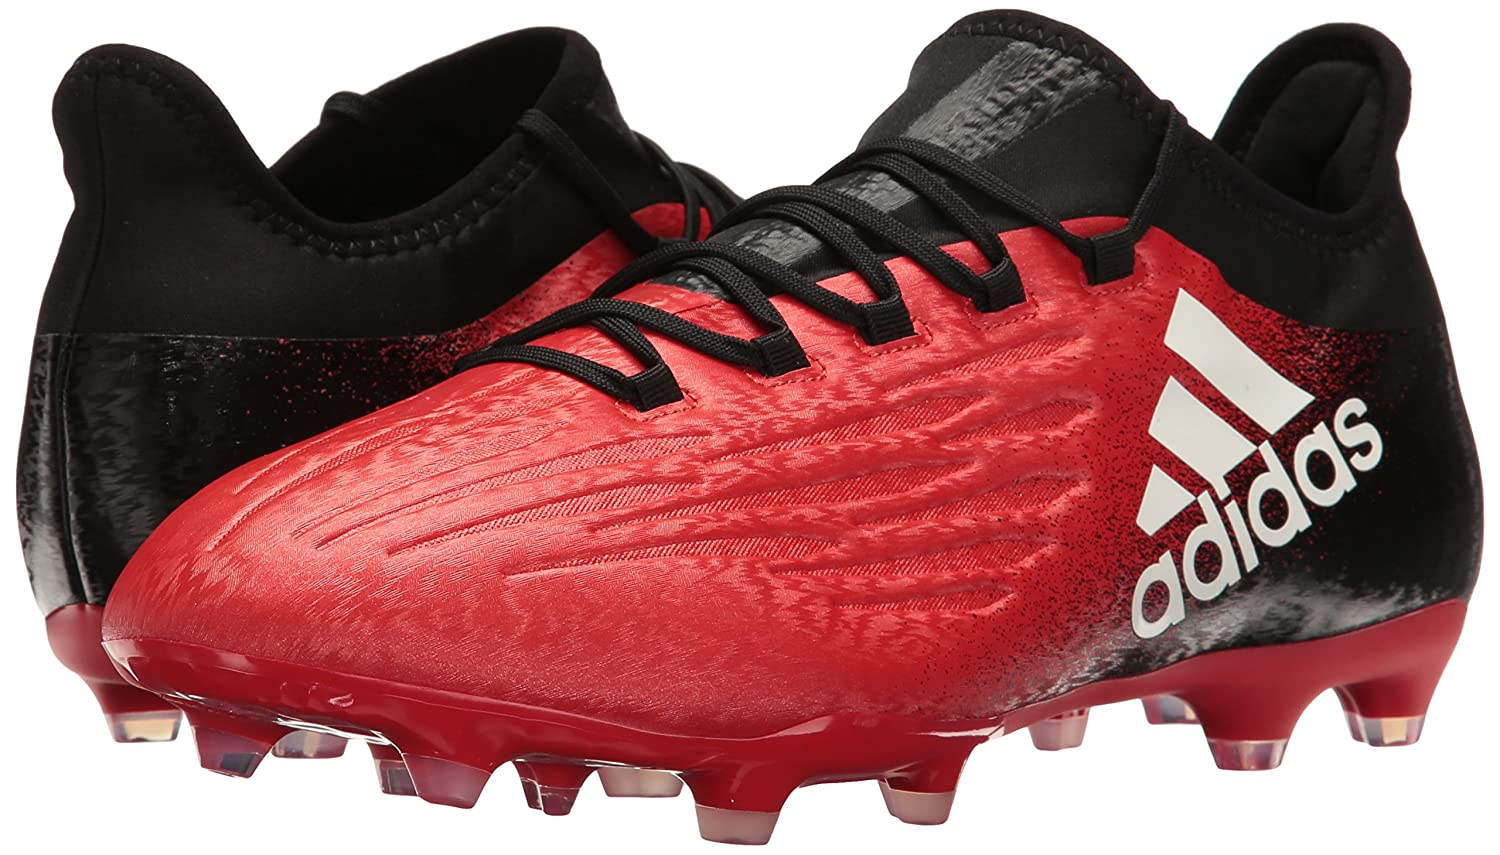 bc225f3f1f1 Red Red Red White Black adidas Men's X 16.2 Fg Football Boots a0bf4a ...